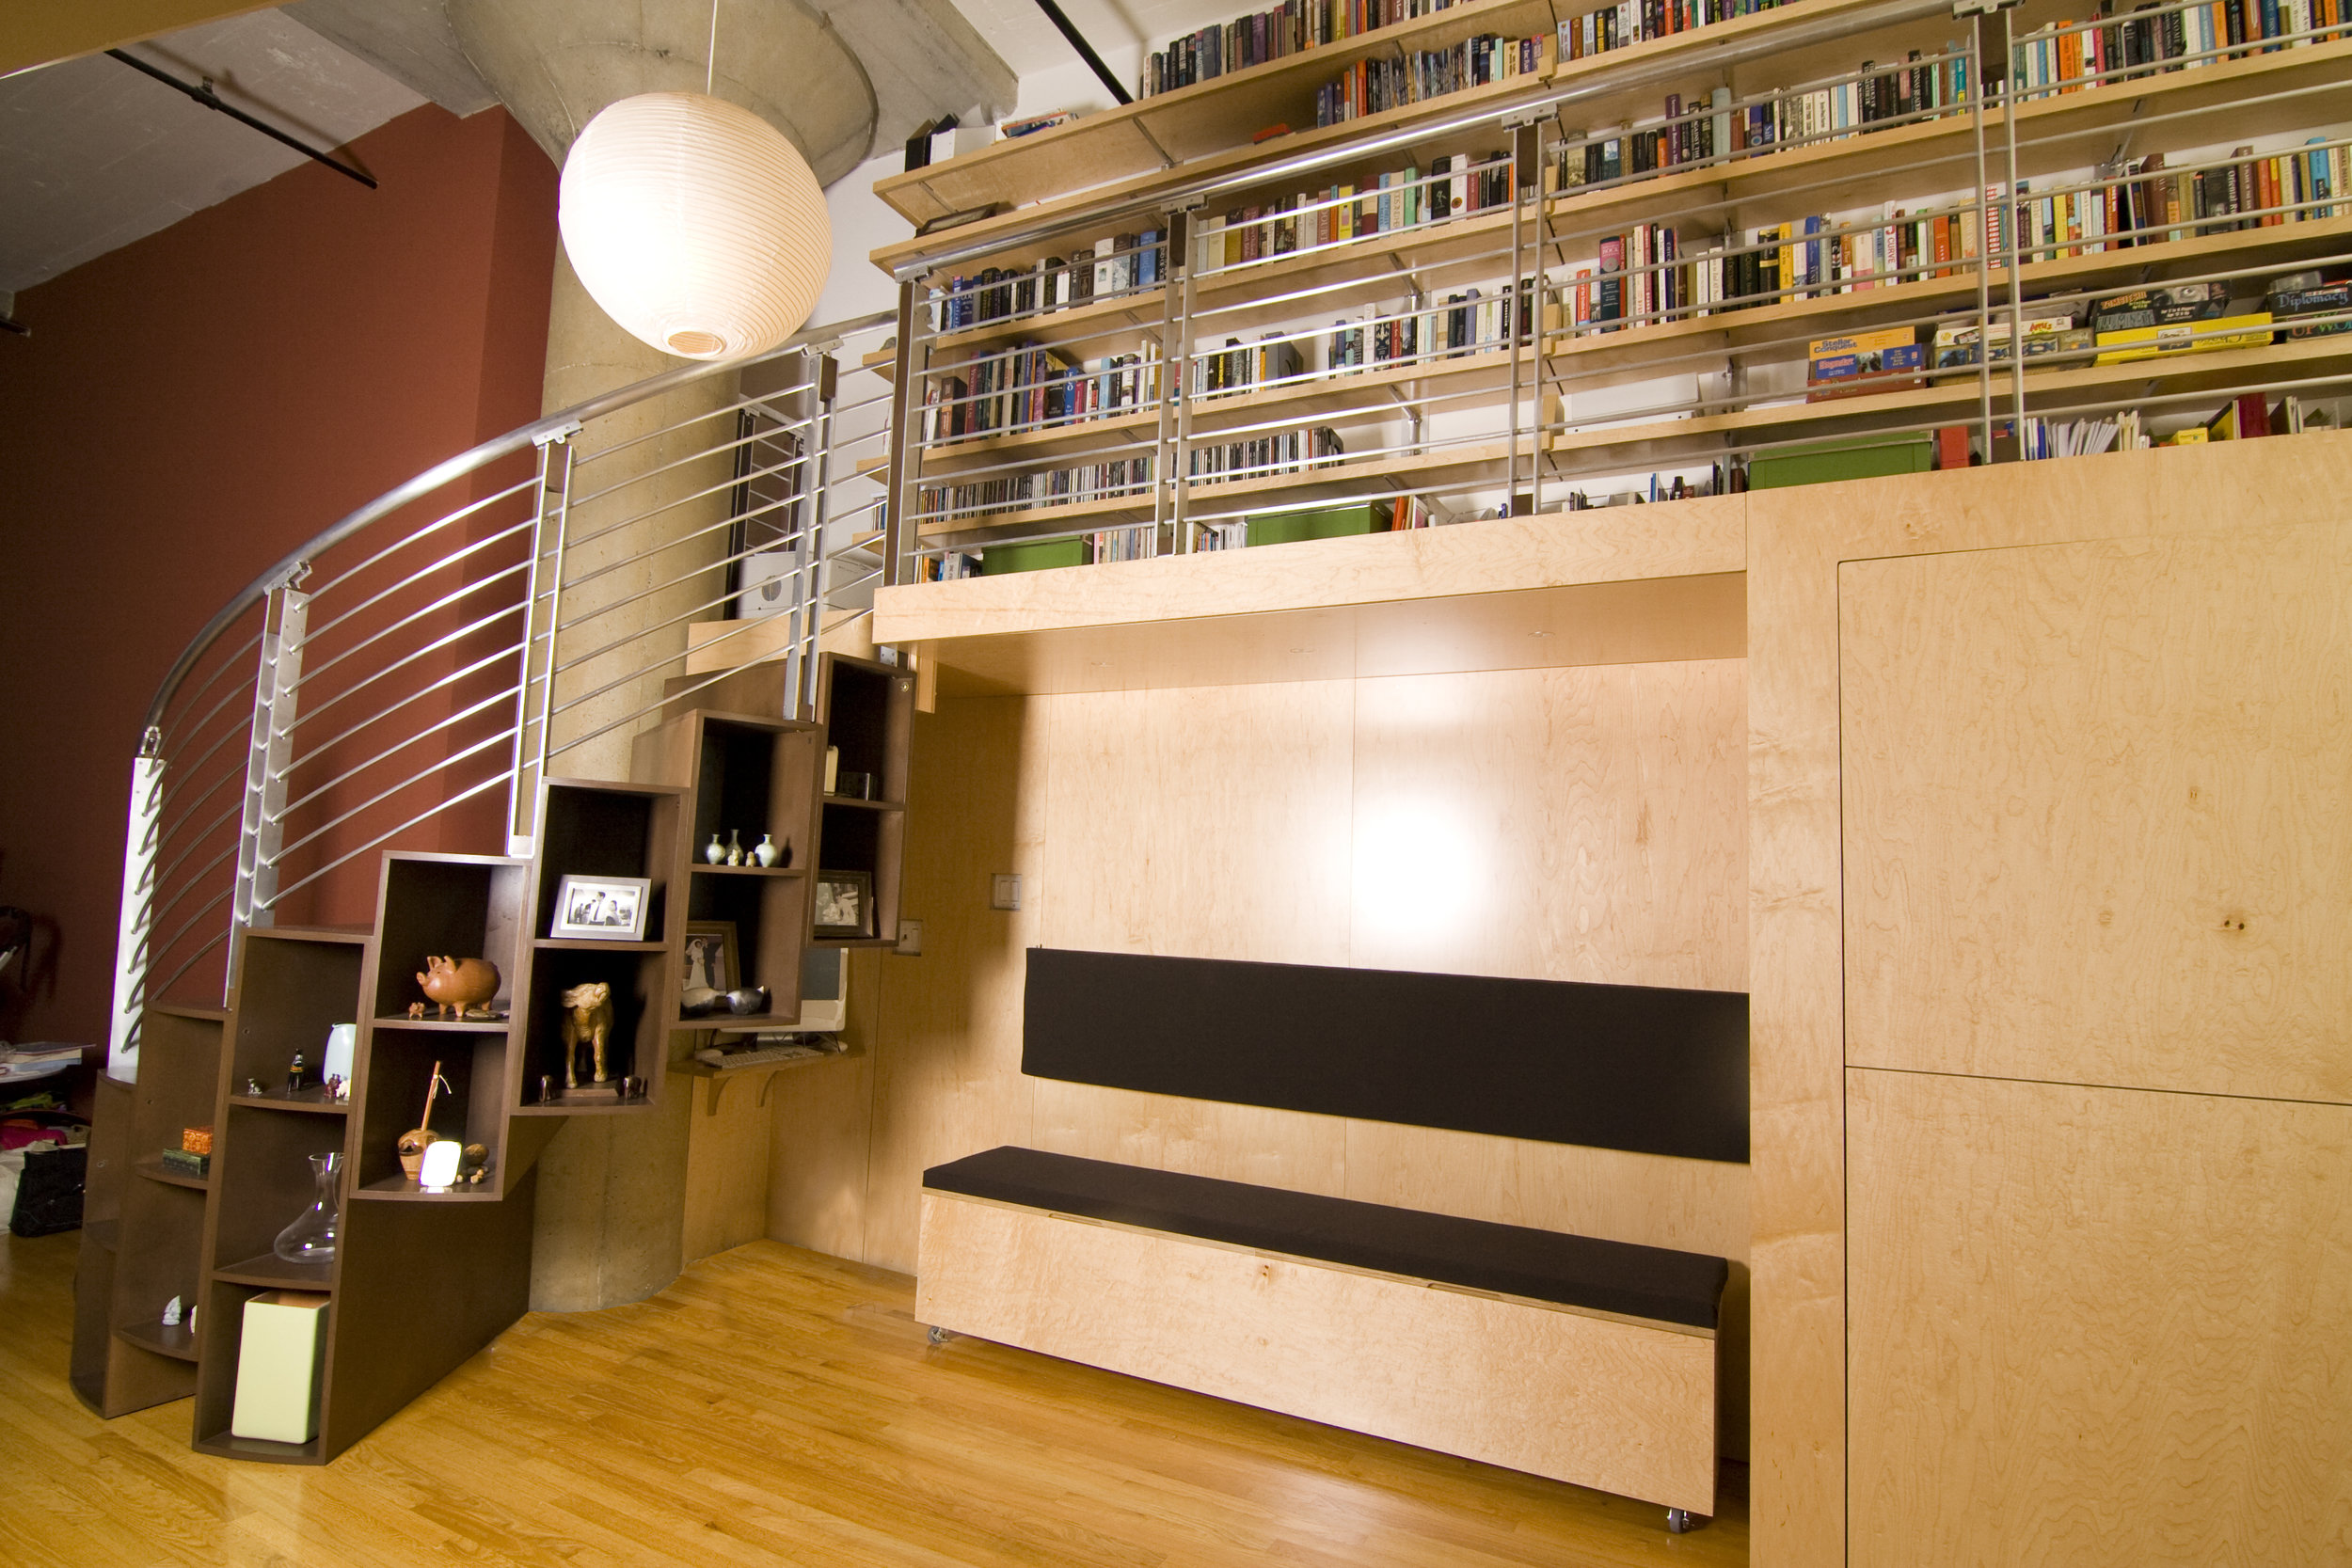 The entire structure was delivered in just a few large units, keeping the installation time to a minimum.The lip of the rolling bench flips up to hold more storage and the flip down desk is illuminated by lights embedded in the above ceiling.